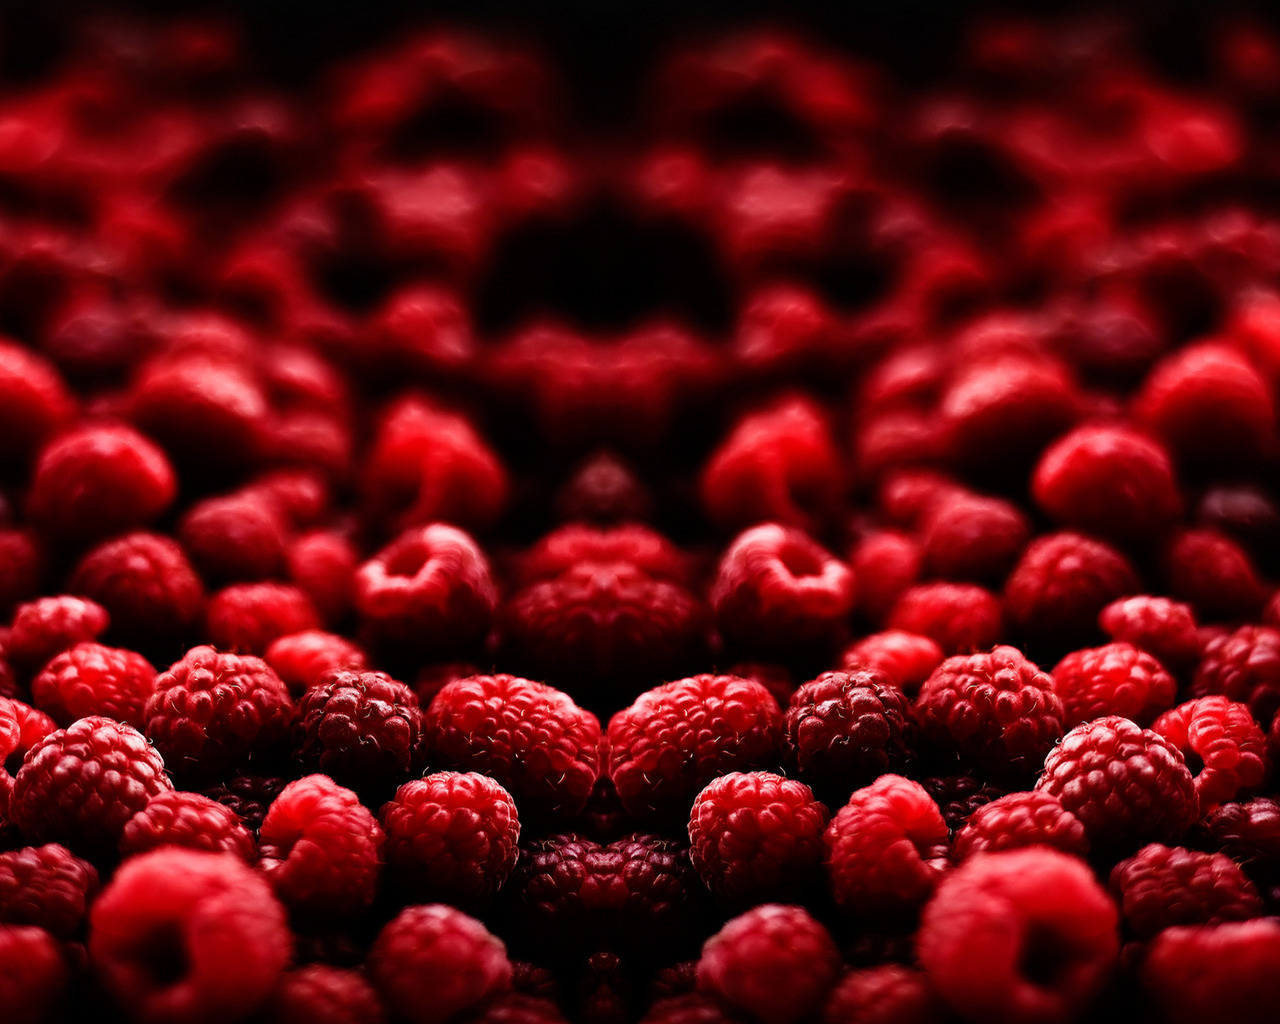 10066 download wallpaper Food, Background, Raspberry, Berries screensavers and pictures for free